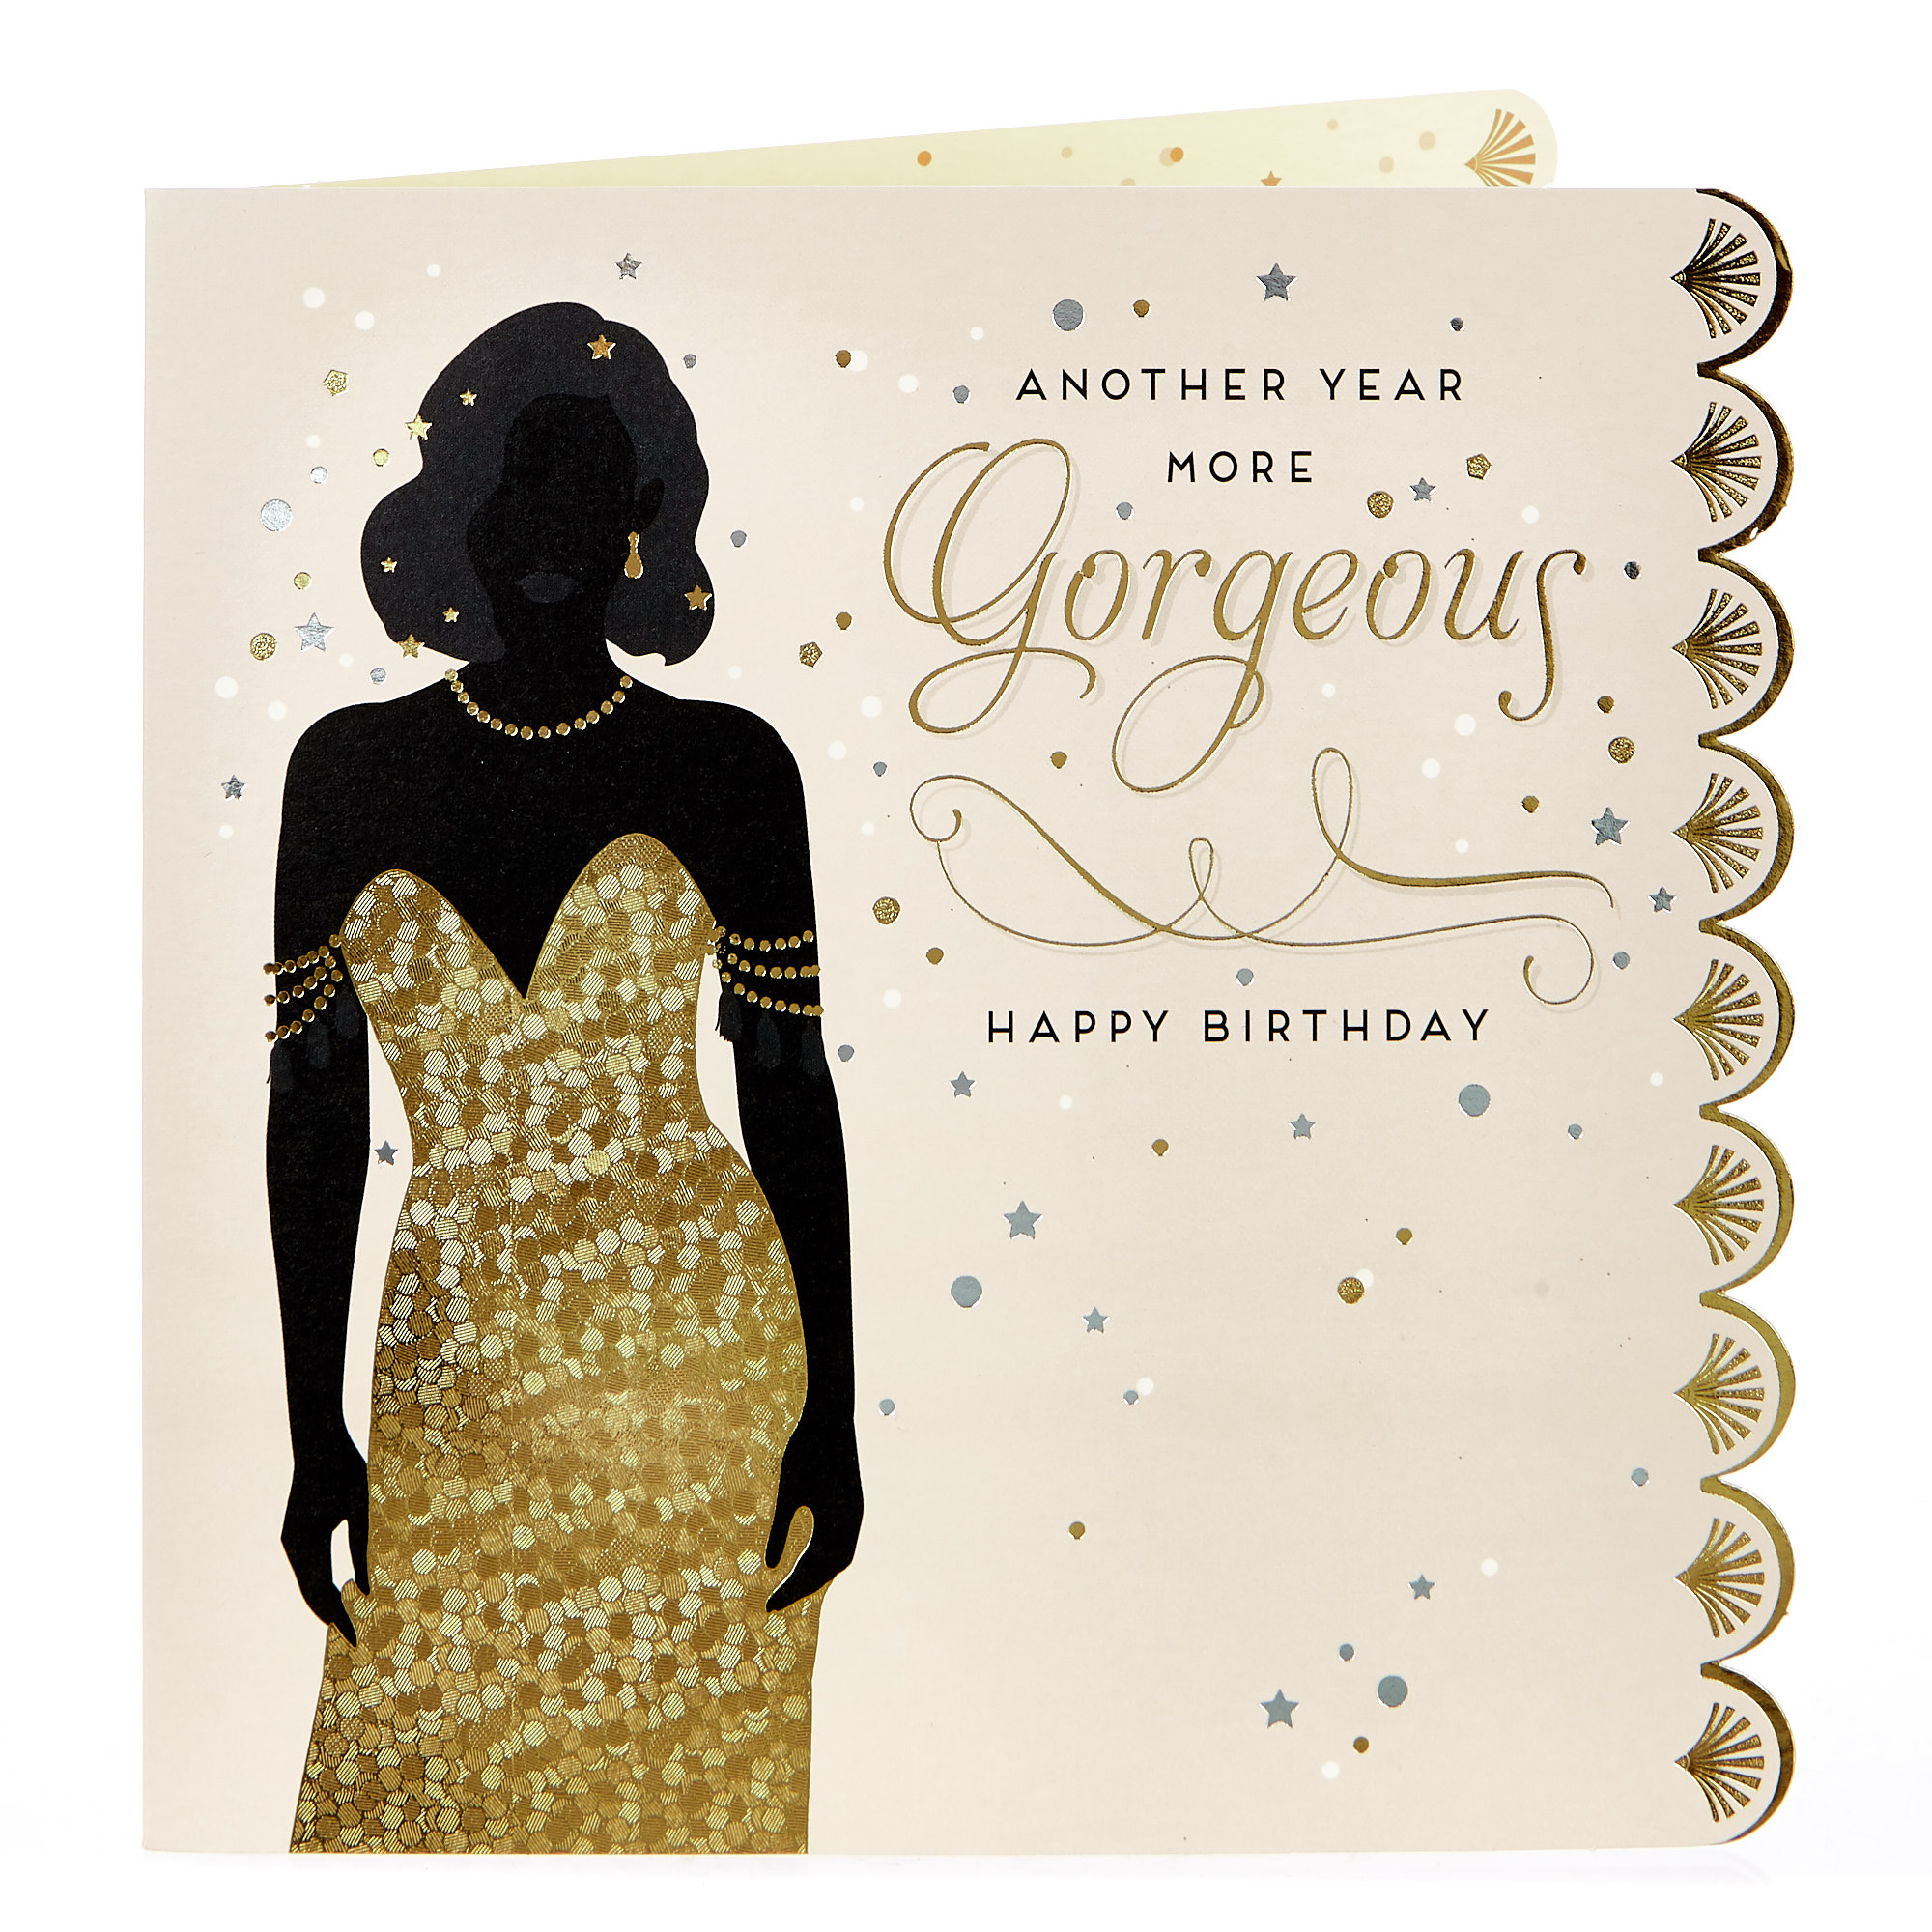 Birthday Card - Another Year More Gorgeous